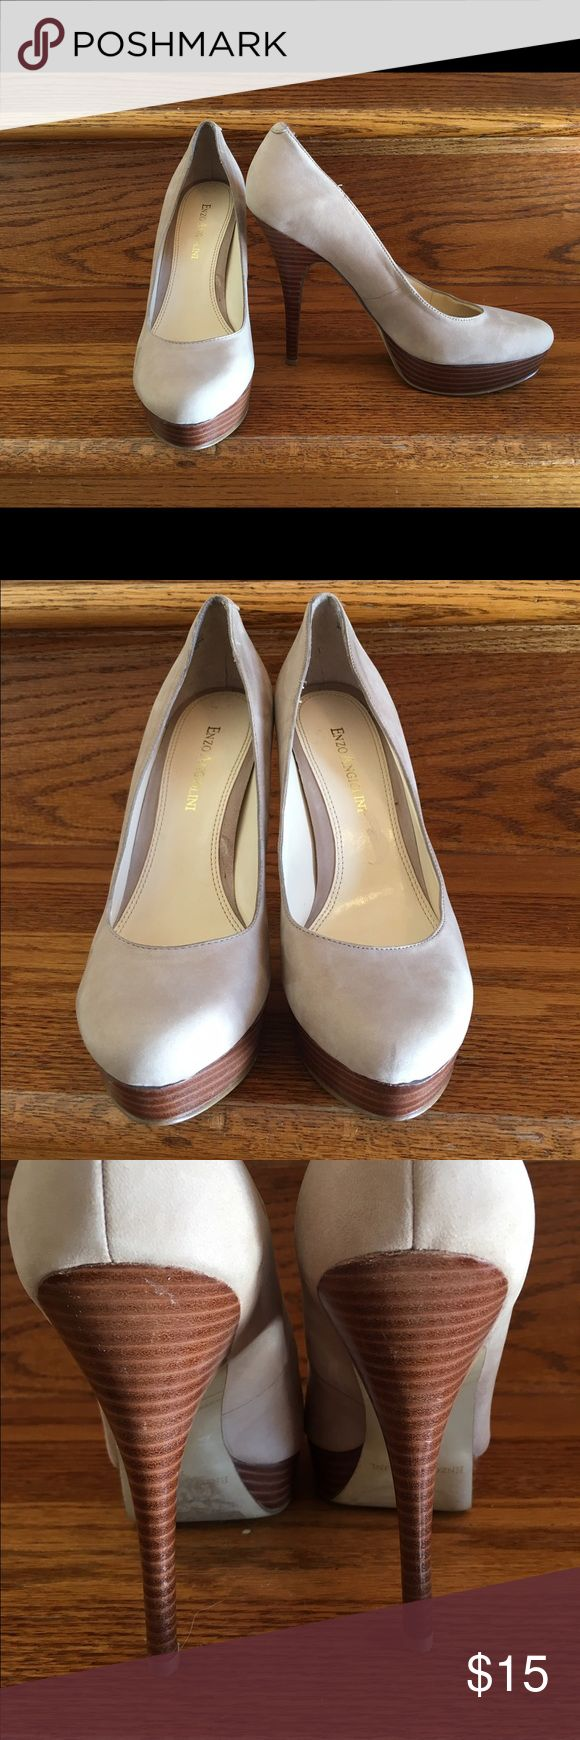 """Enzo Angiolini Beige Suede Platform Heels Pumps Enzo Angiolini Beige Suede Platform Pumps Size 7. Worn a few times and they are a few scuffs in the them. Please see pictures. Heel is 5"""" and platform is 1"""". Enzo Angiolini Shoes Heels"""